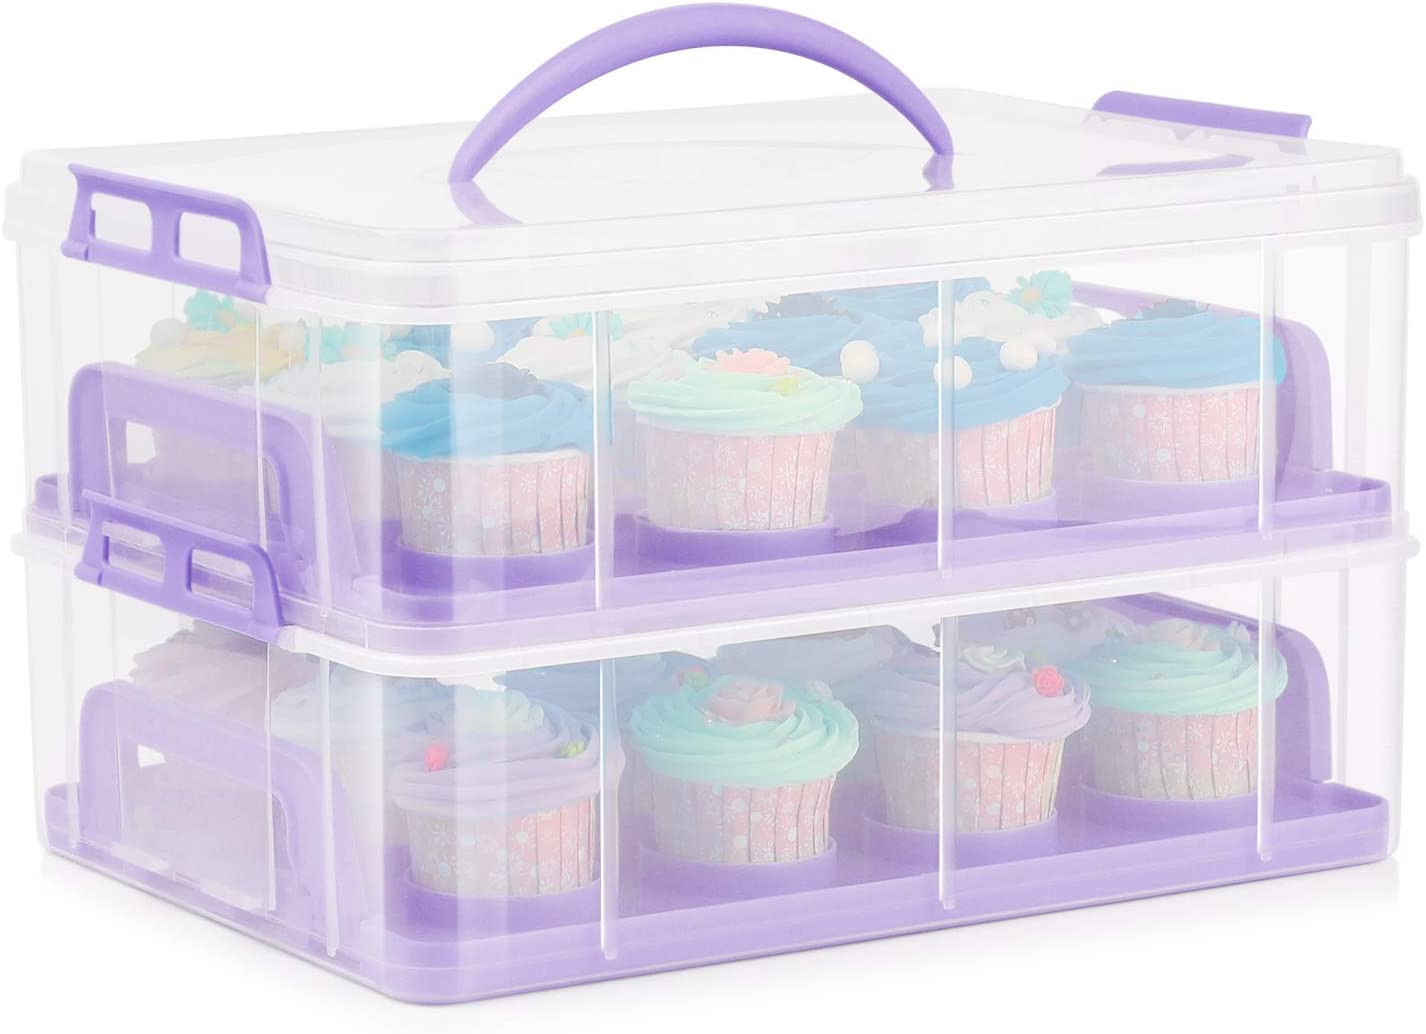 Flexzion Cupcake Carrier Quality inspection Holder Container Box 24 Max 82% OFF Tier Slot 2